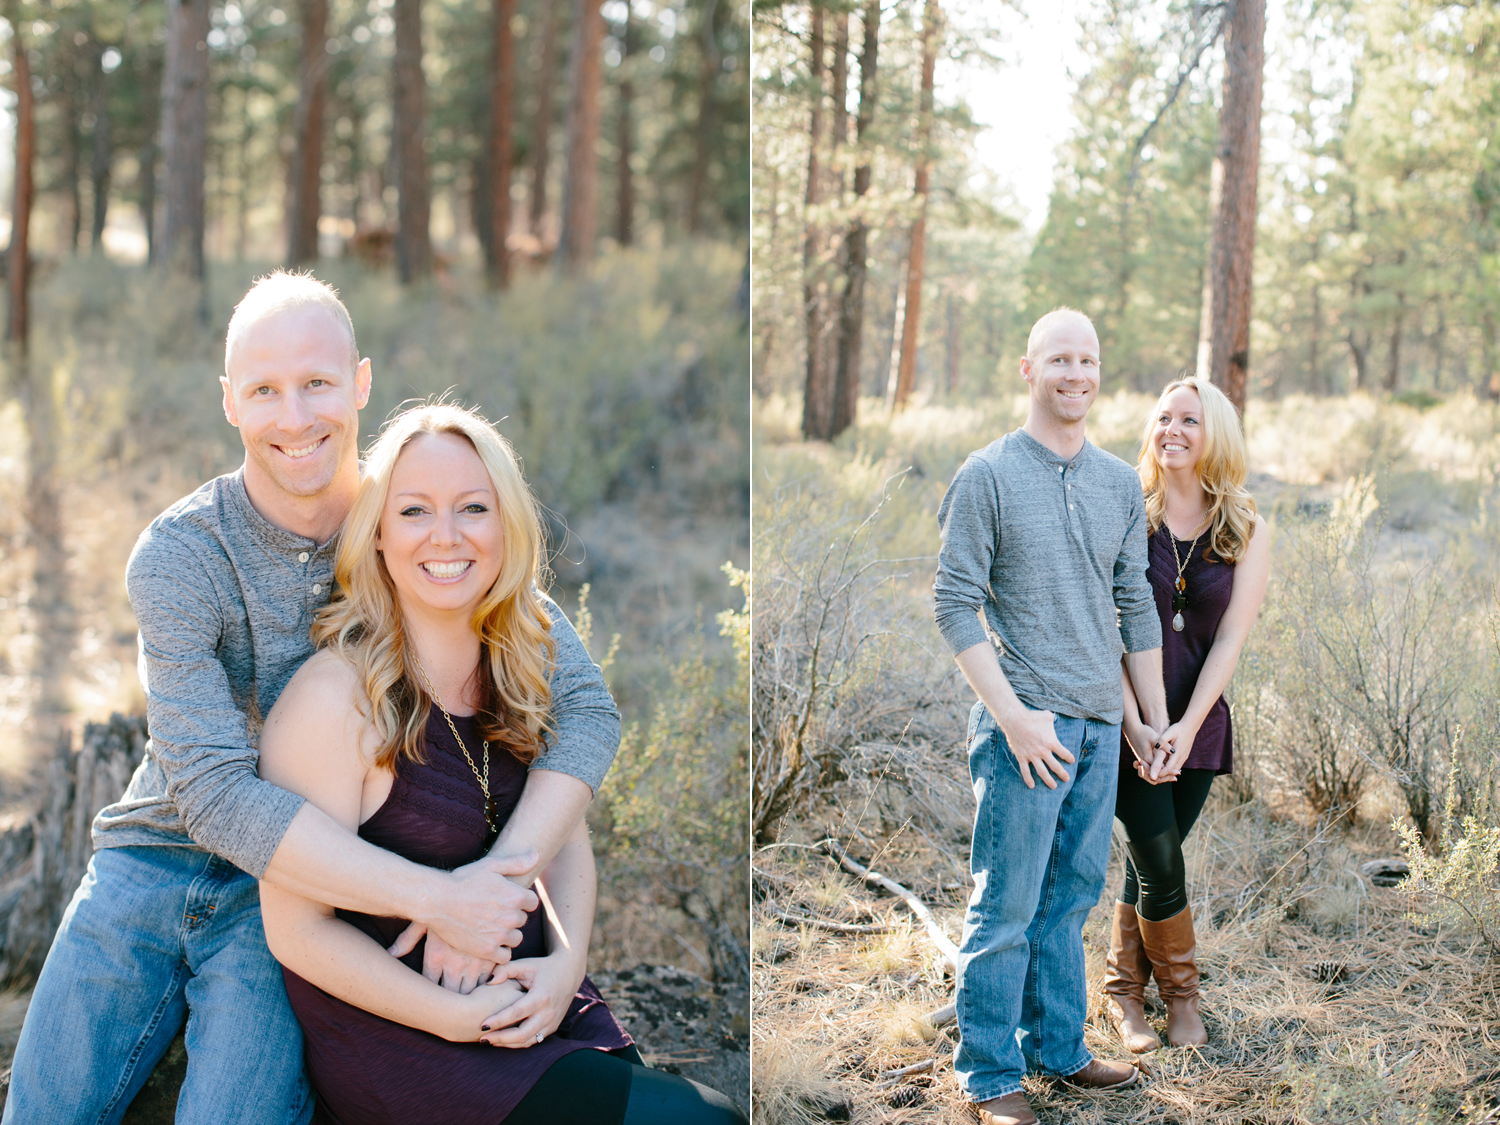 Bend Oregon Engagement by Michelle Cross - 1.jpg